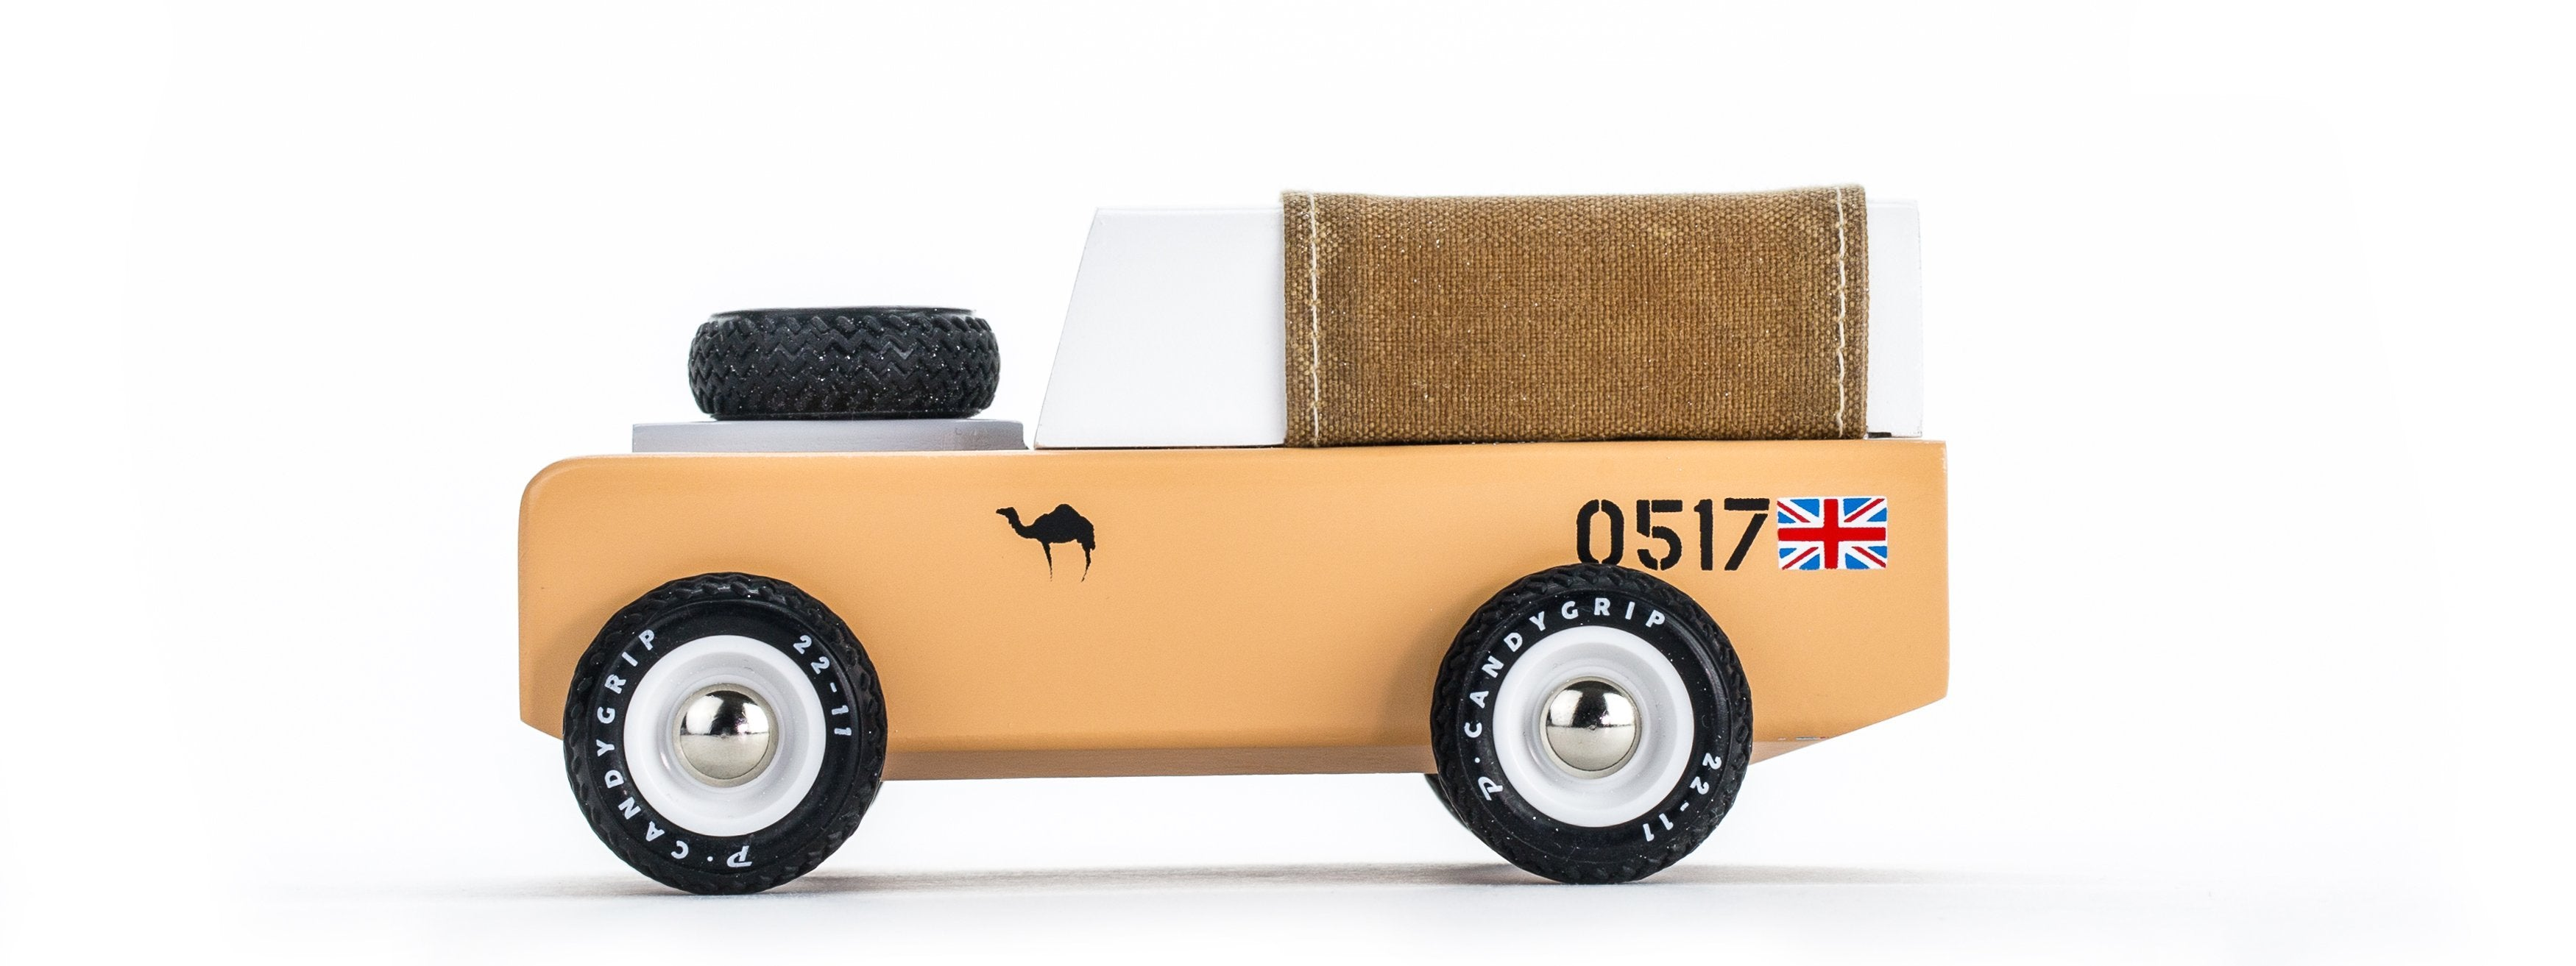 Candylab sahara truck. The body is tan and there is a spare wheel on the top at the front. Solid Beech Wood, water-based paint and clear urethane coat.  ABS plastic rims, with rubber tires.